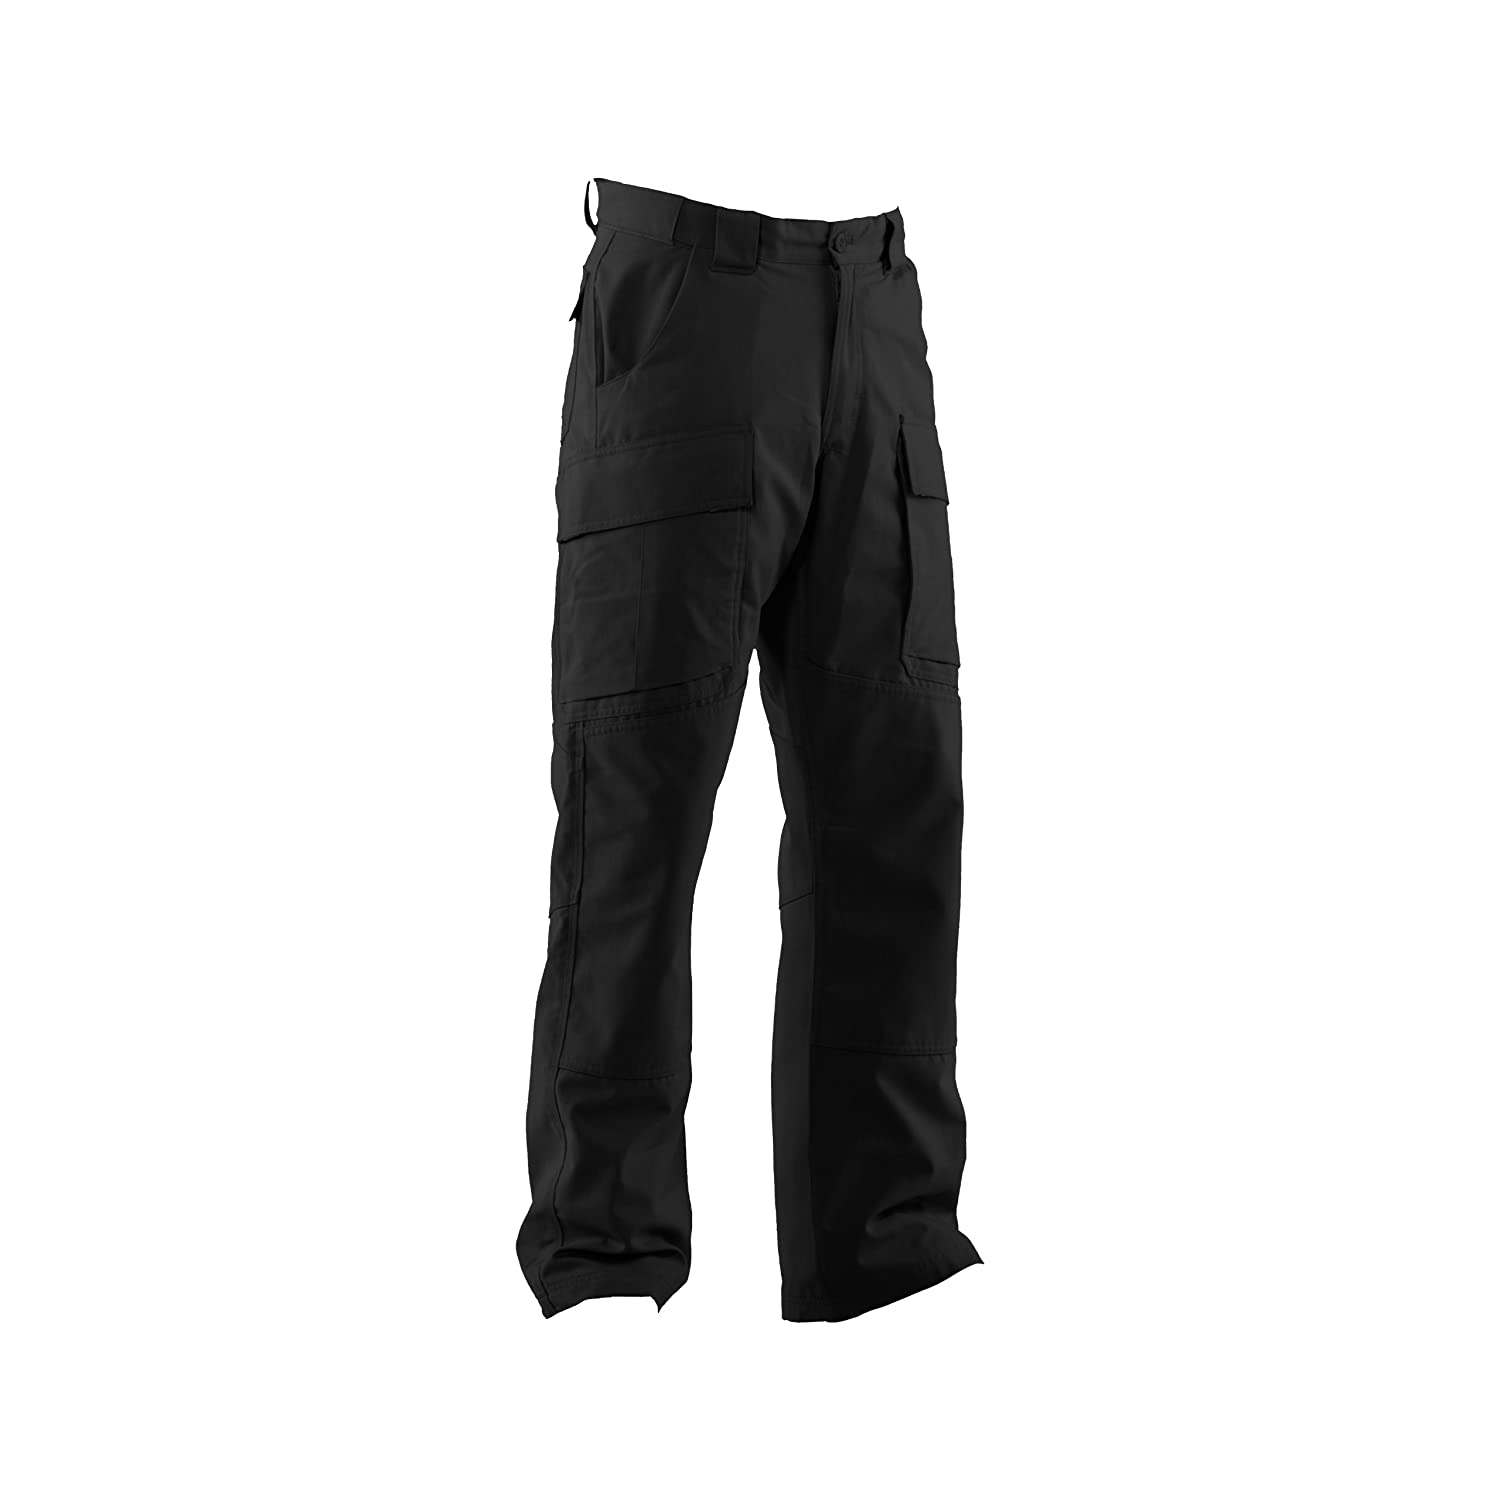 Under Armour Cargo-Hose, Schwarz, 38 /32, UA1230536S-3832